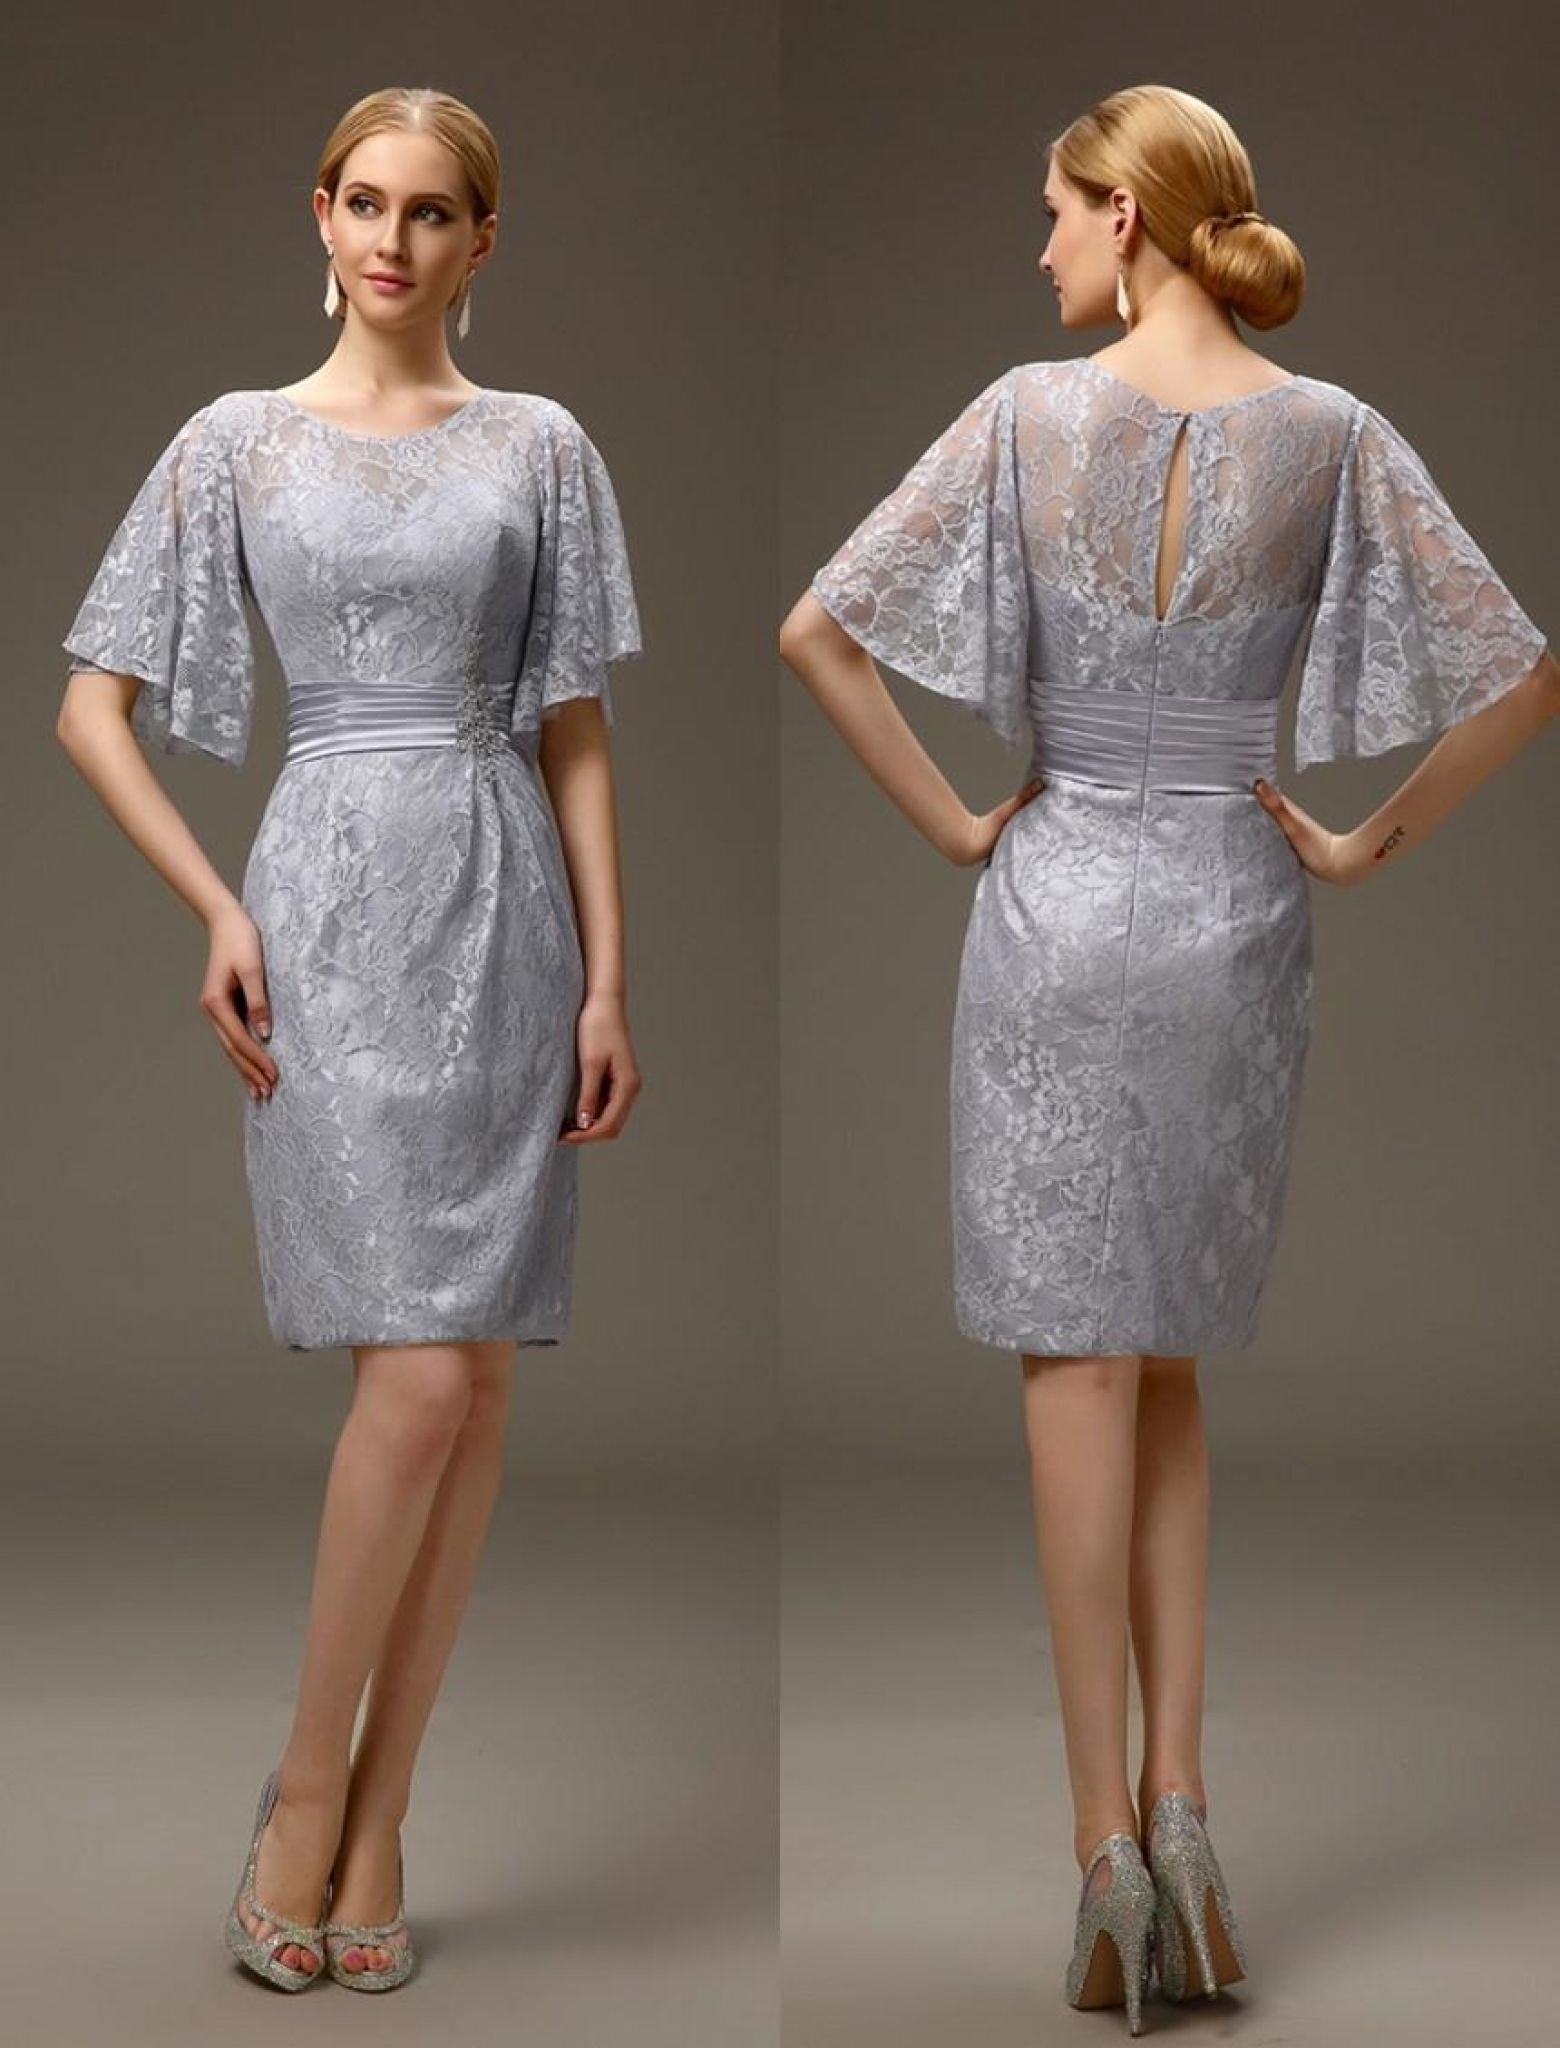 Wedding dresses for mother of the bride  casual mother of the bride dresses for outdoor wedding  best